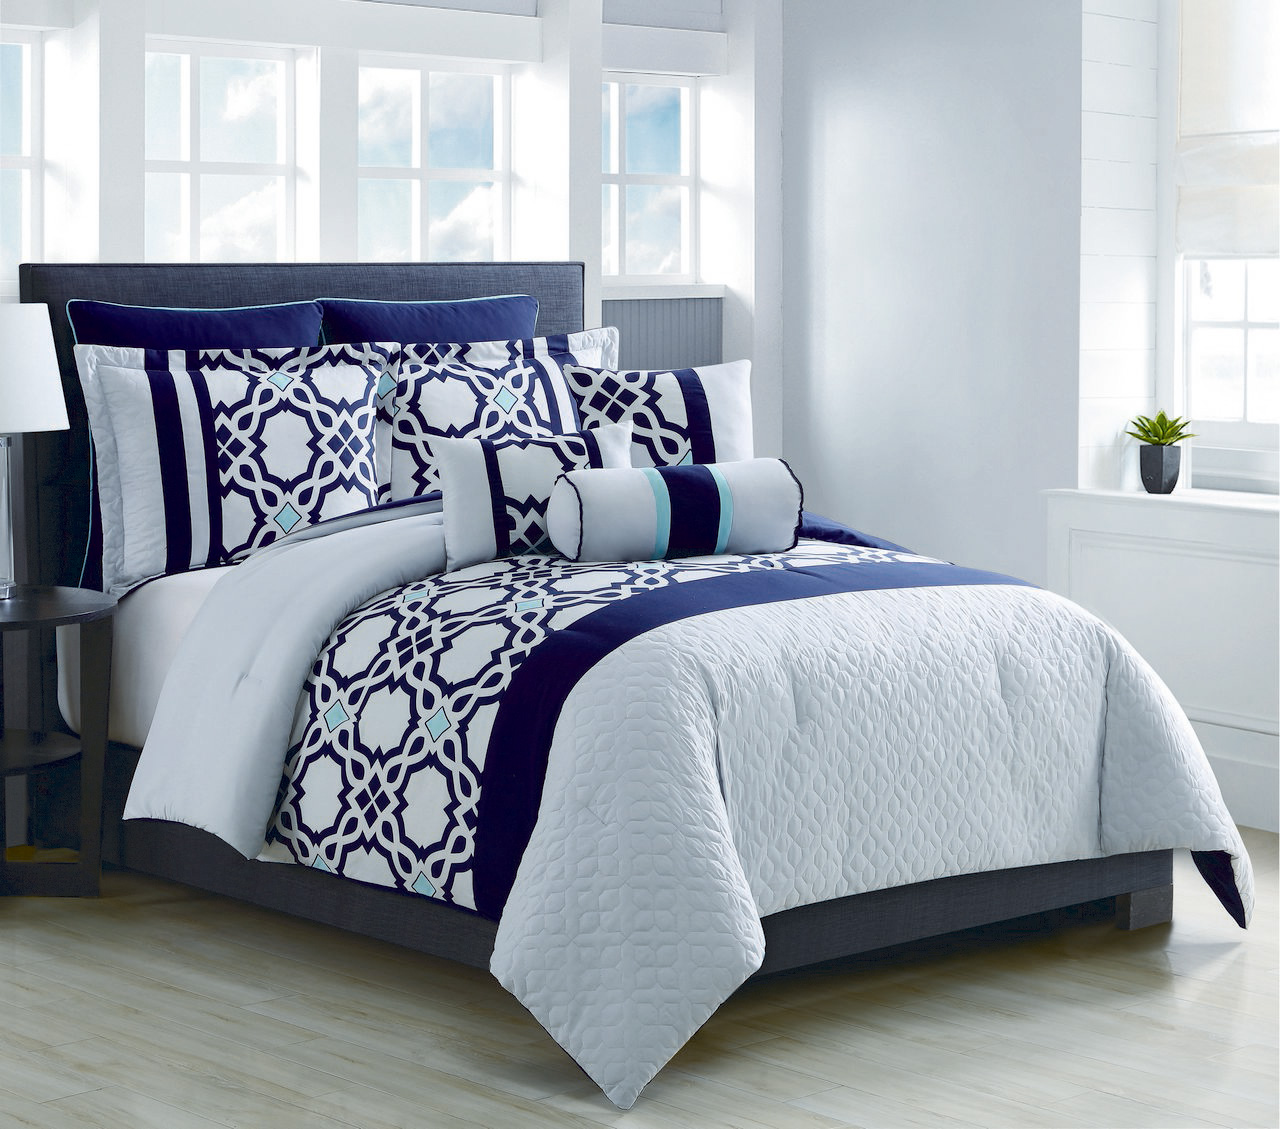 8 Piece Anabel Navy Aqua Silver Comforter Set King